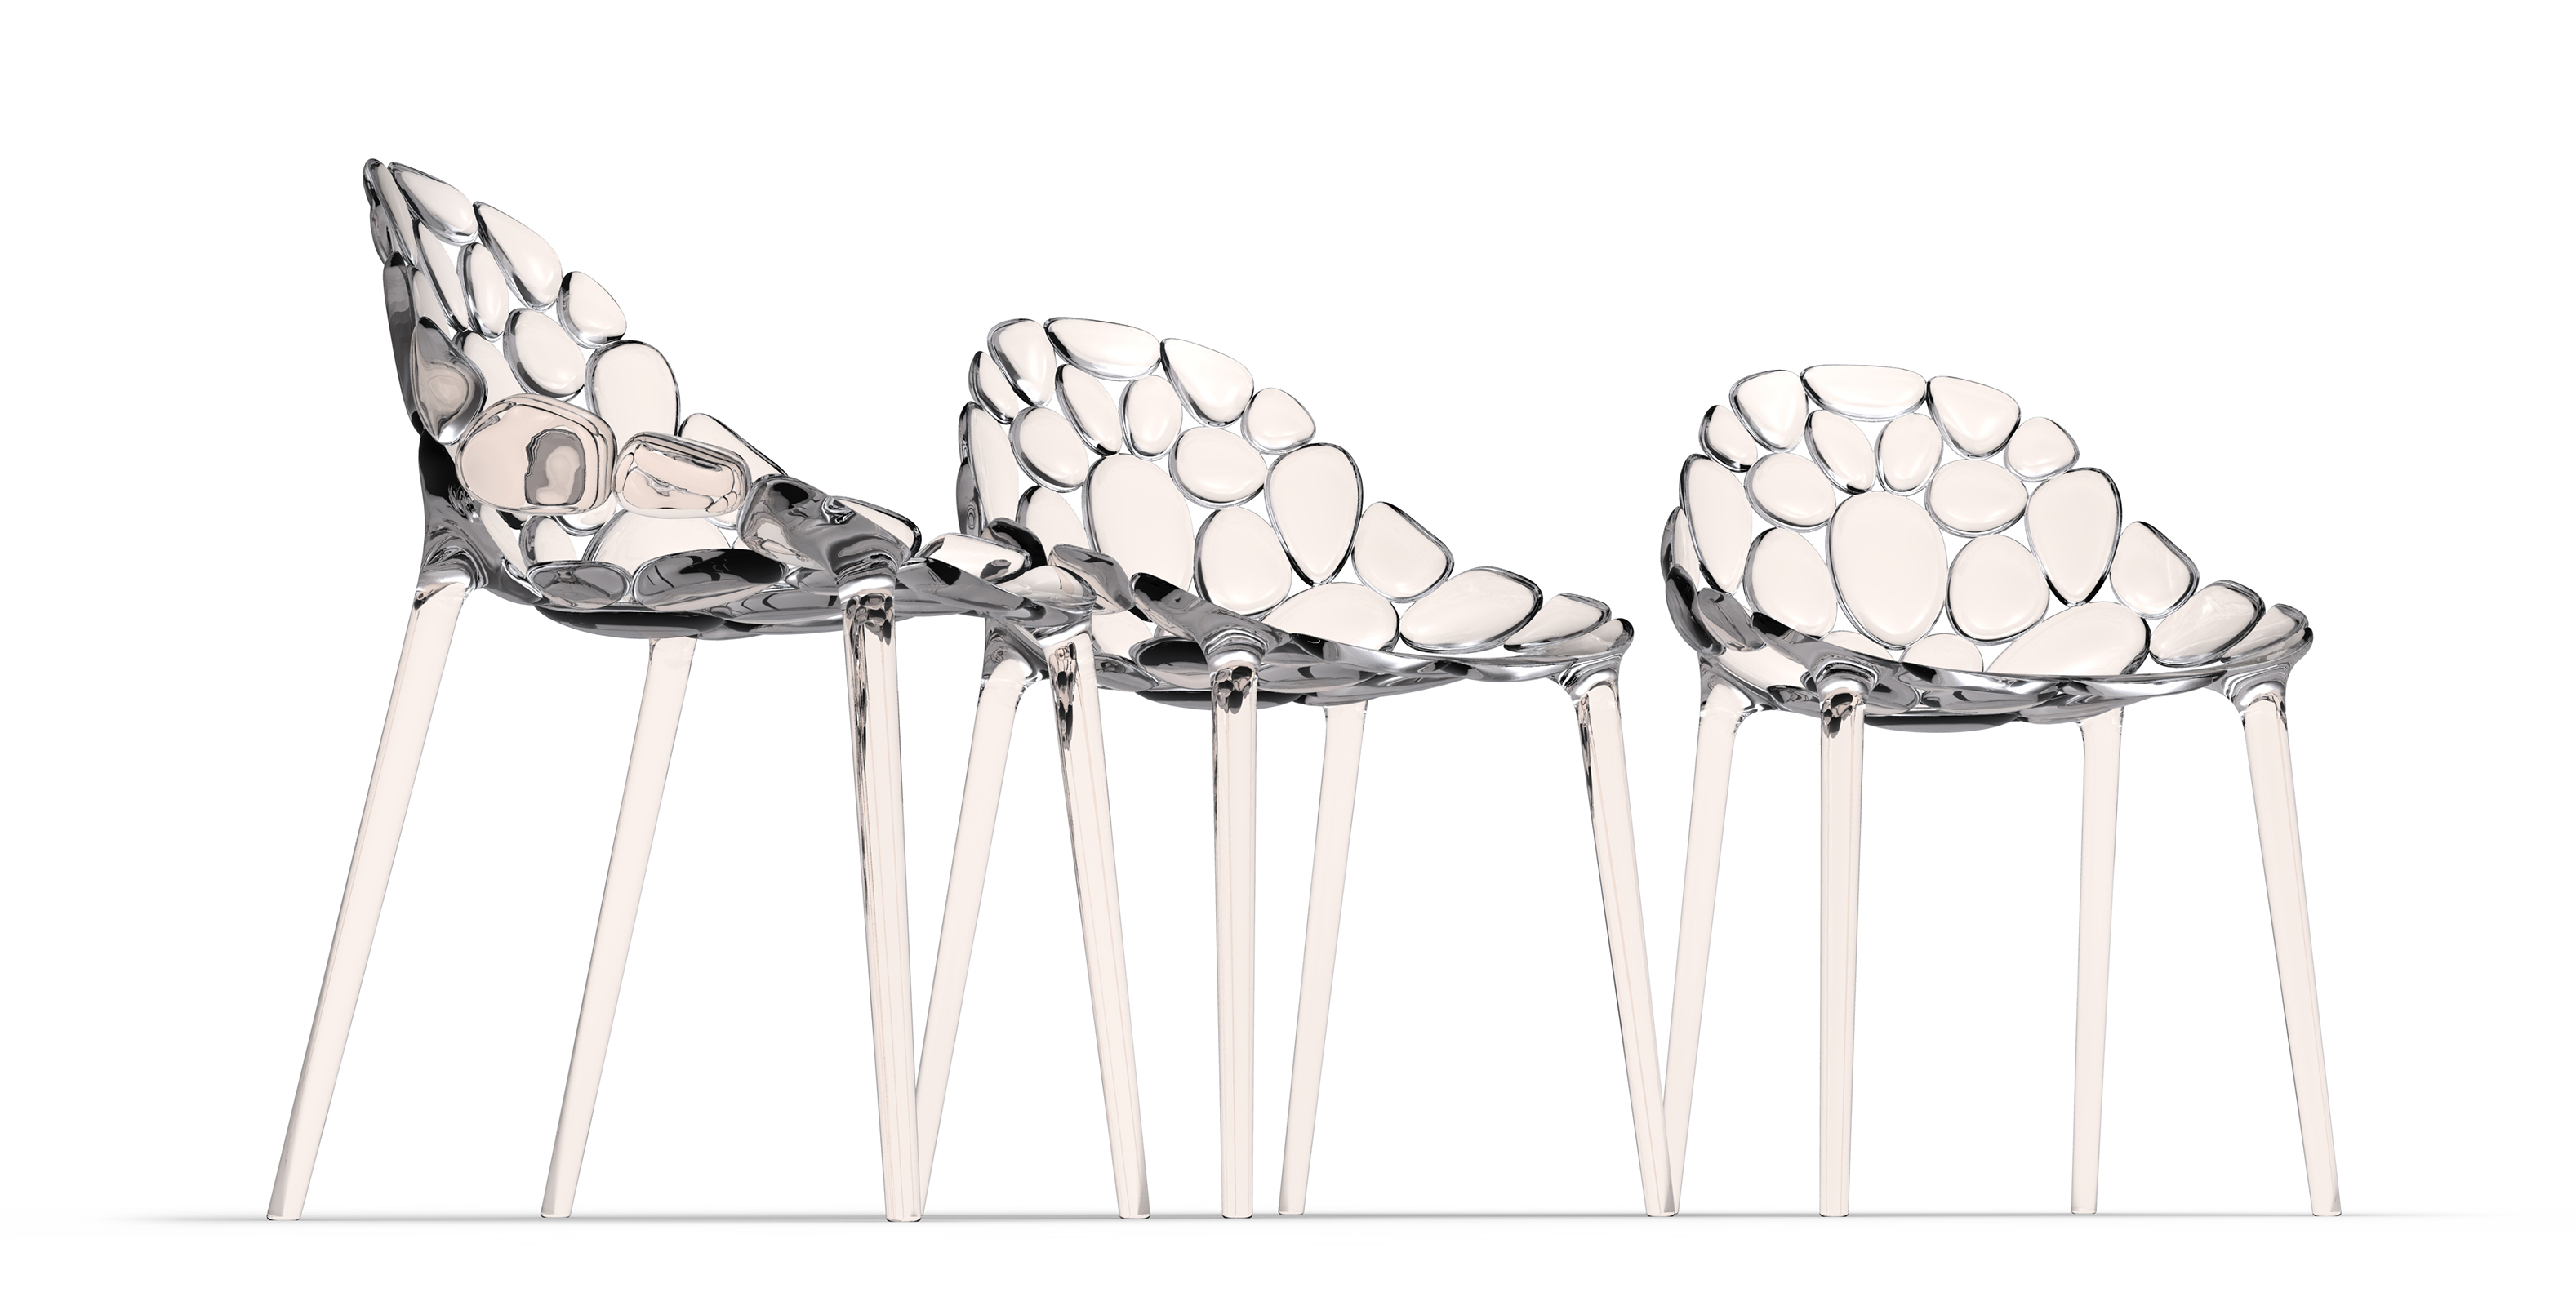 Claud-io chair by eugeni Quitllet with Kartell 8